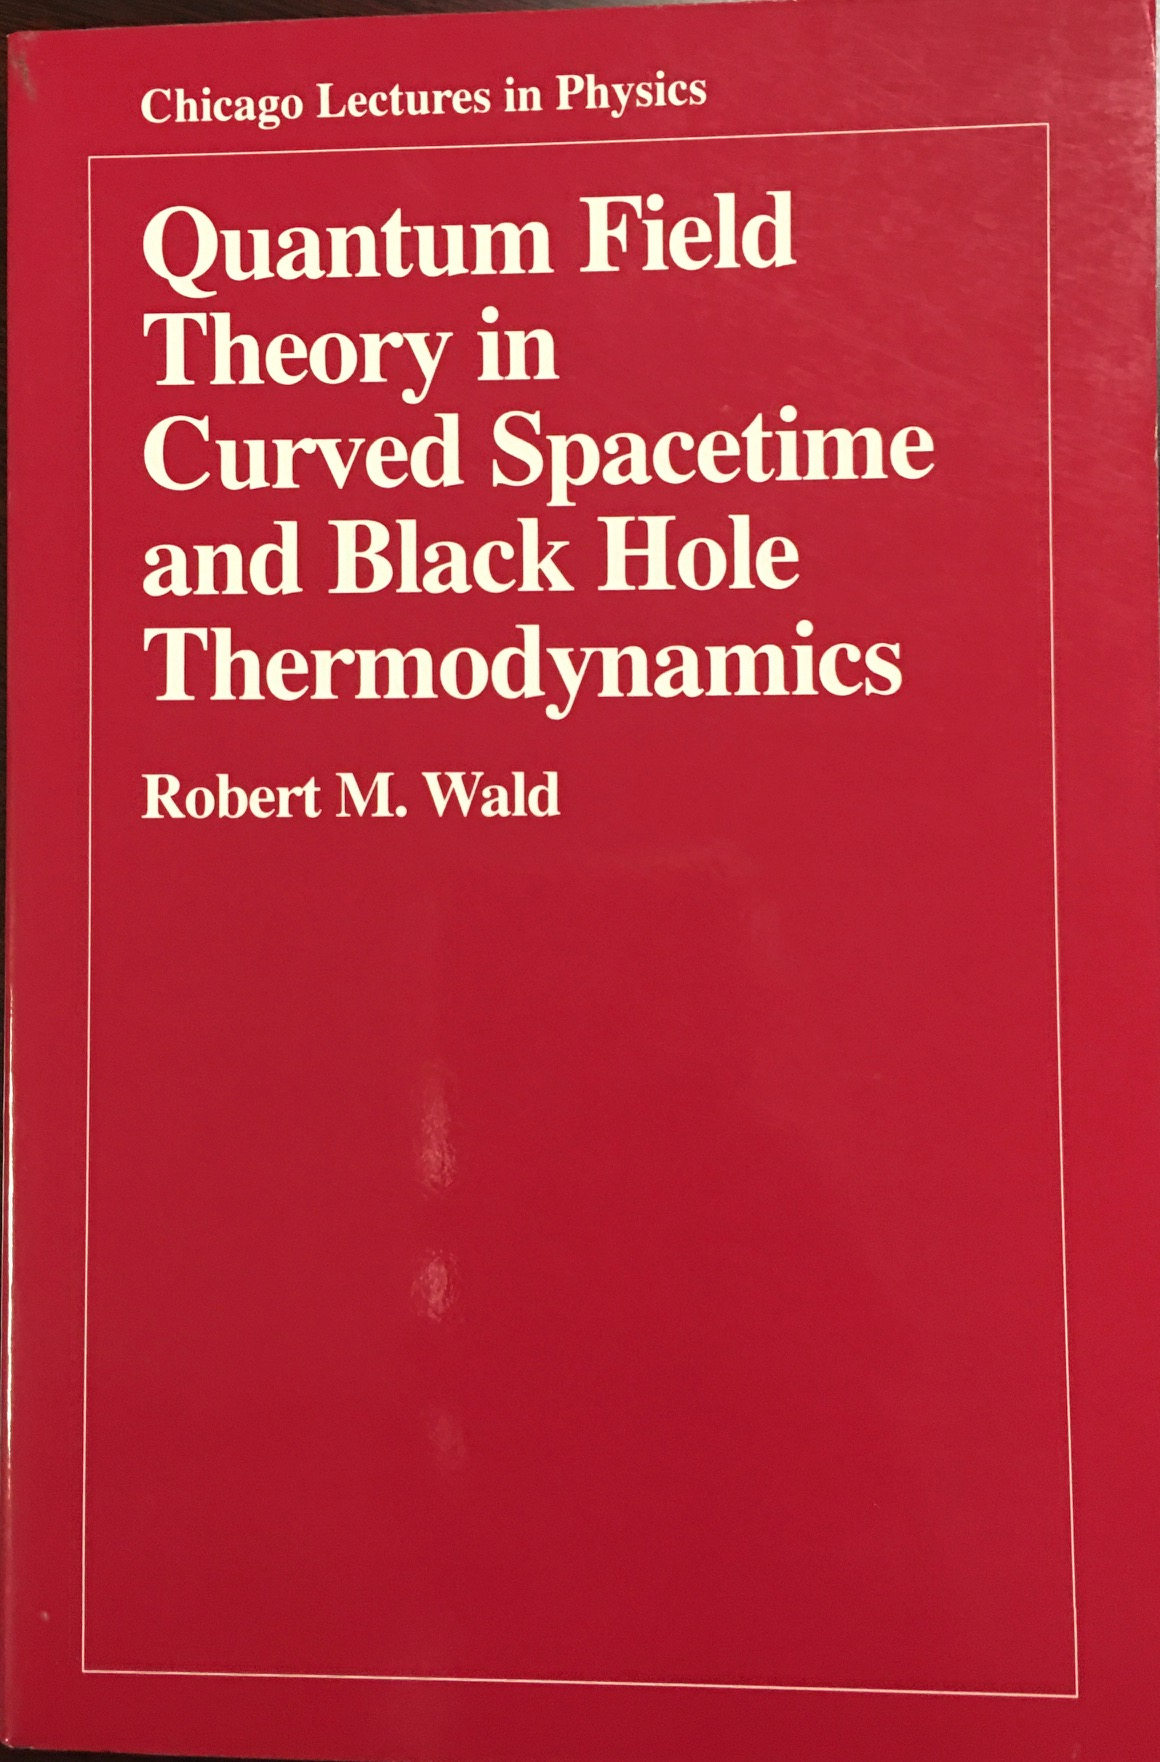 Image for Quantum Field Theory in Curved Spacetime and Black Hole Thermodynamics (Chicago Lectures in Physics)